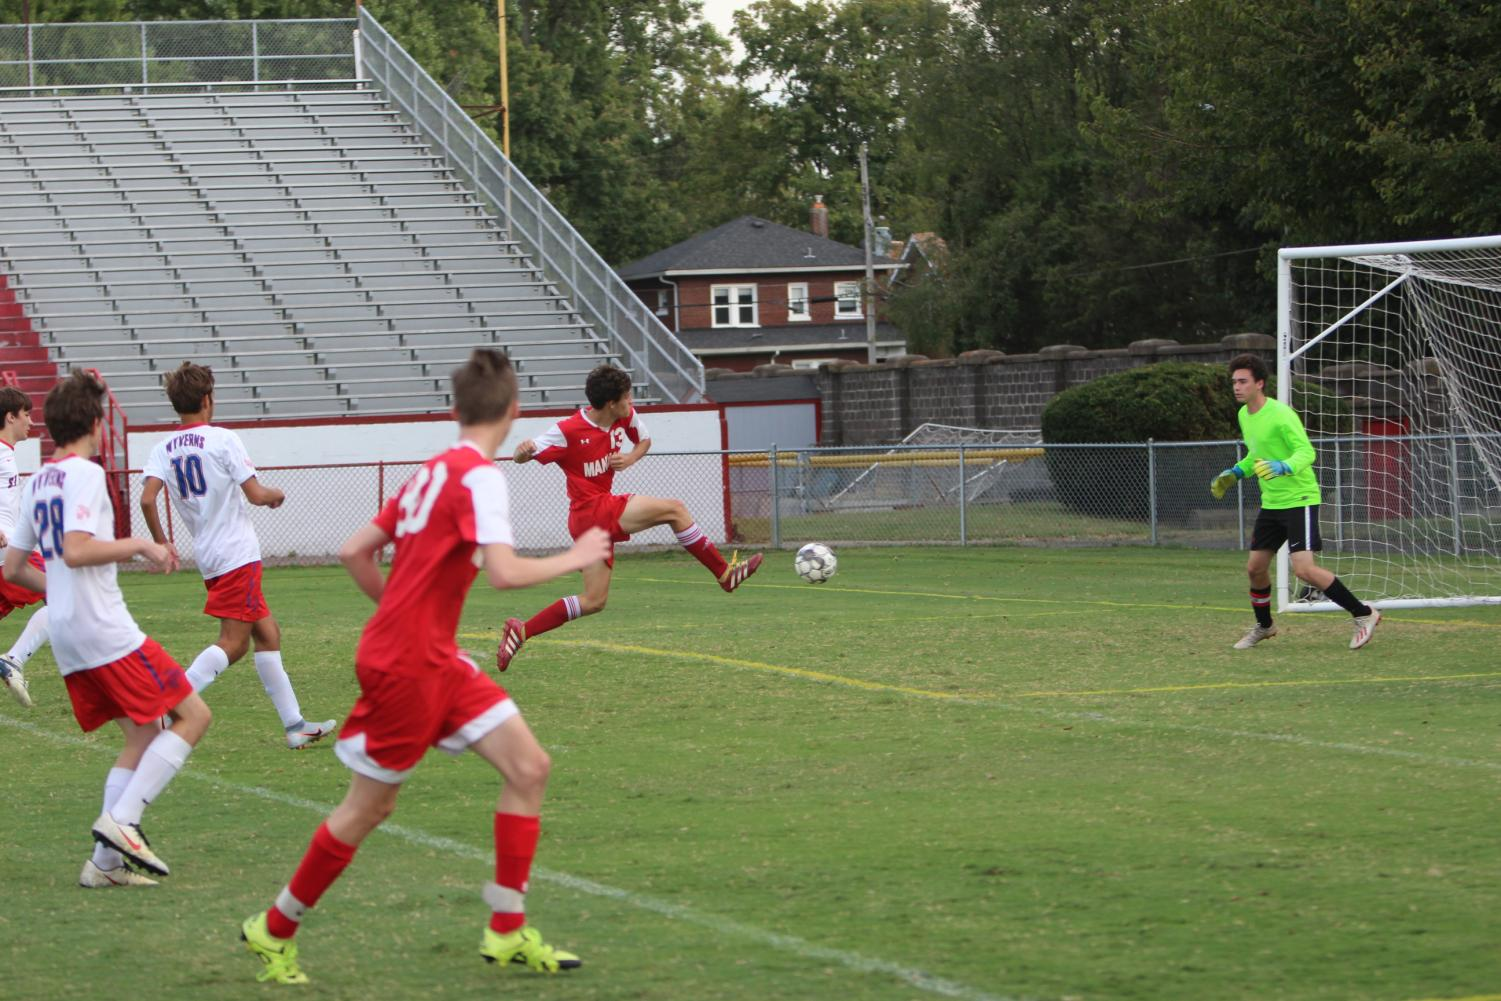 Forward Niko Sapienza leaps into a shot that would turn into a goal for Manual. Photo by Euan Dunn.